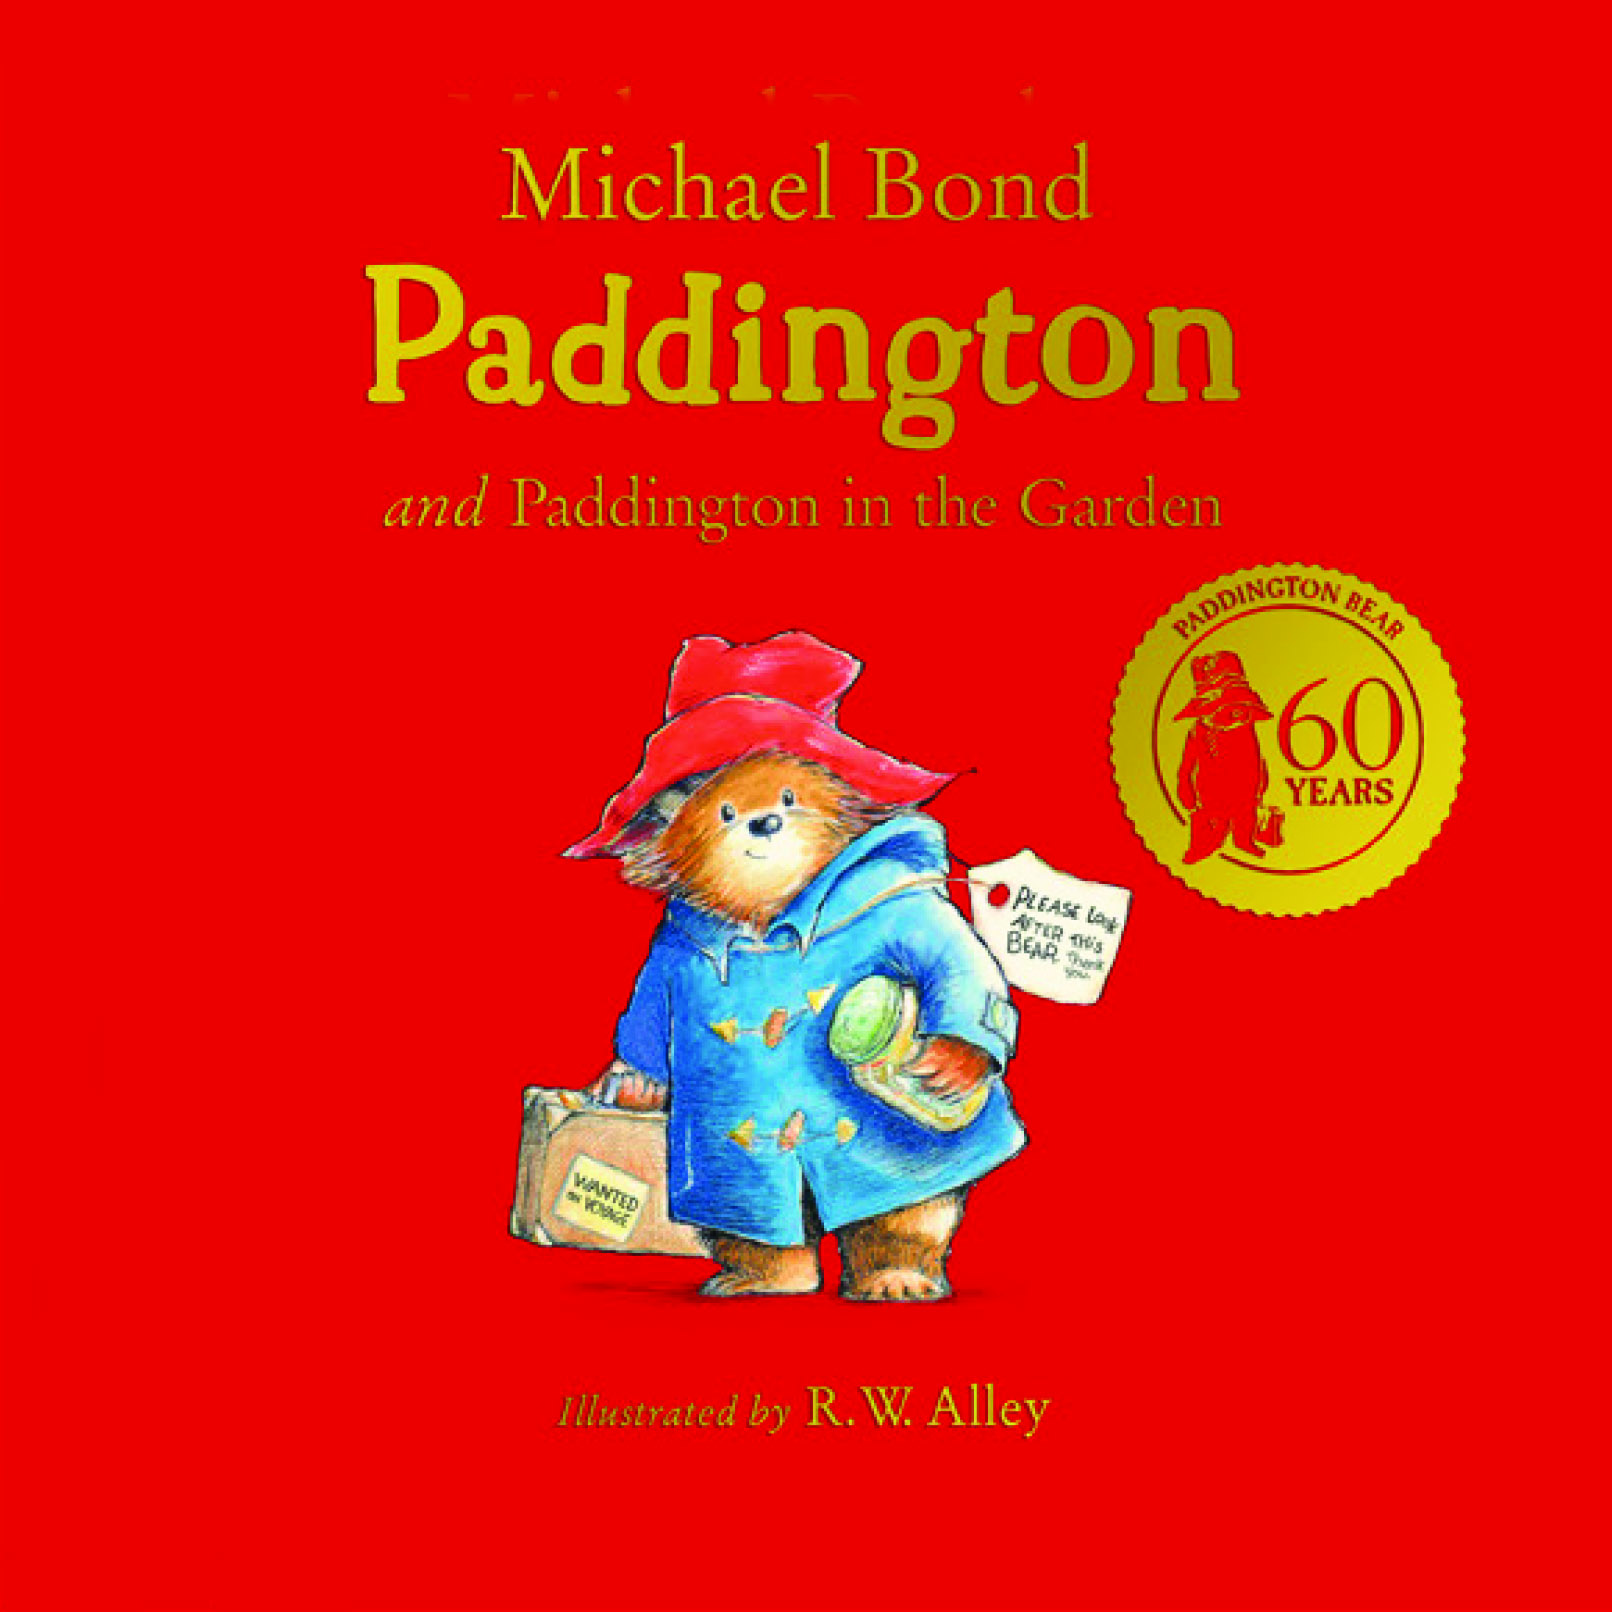 paddington bear book